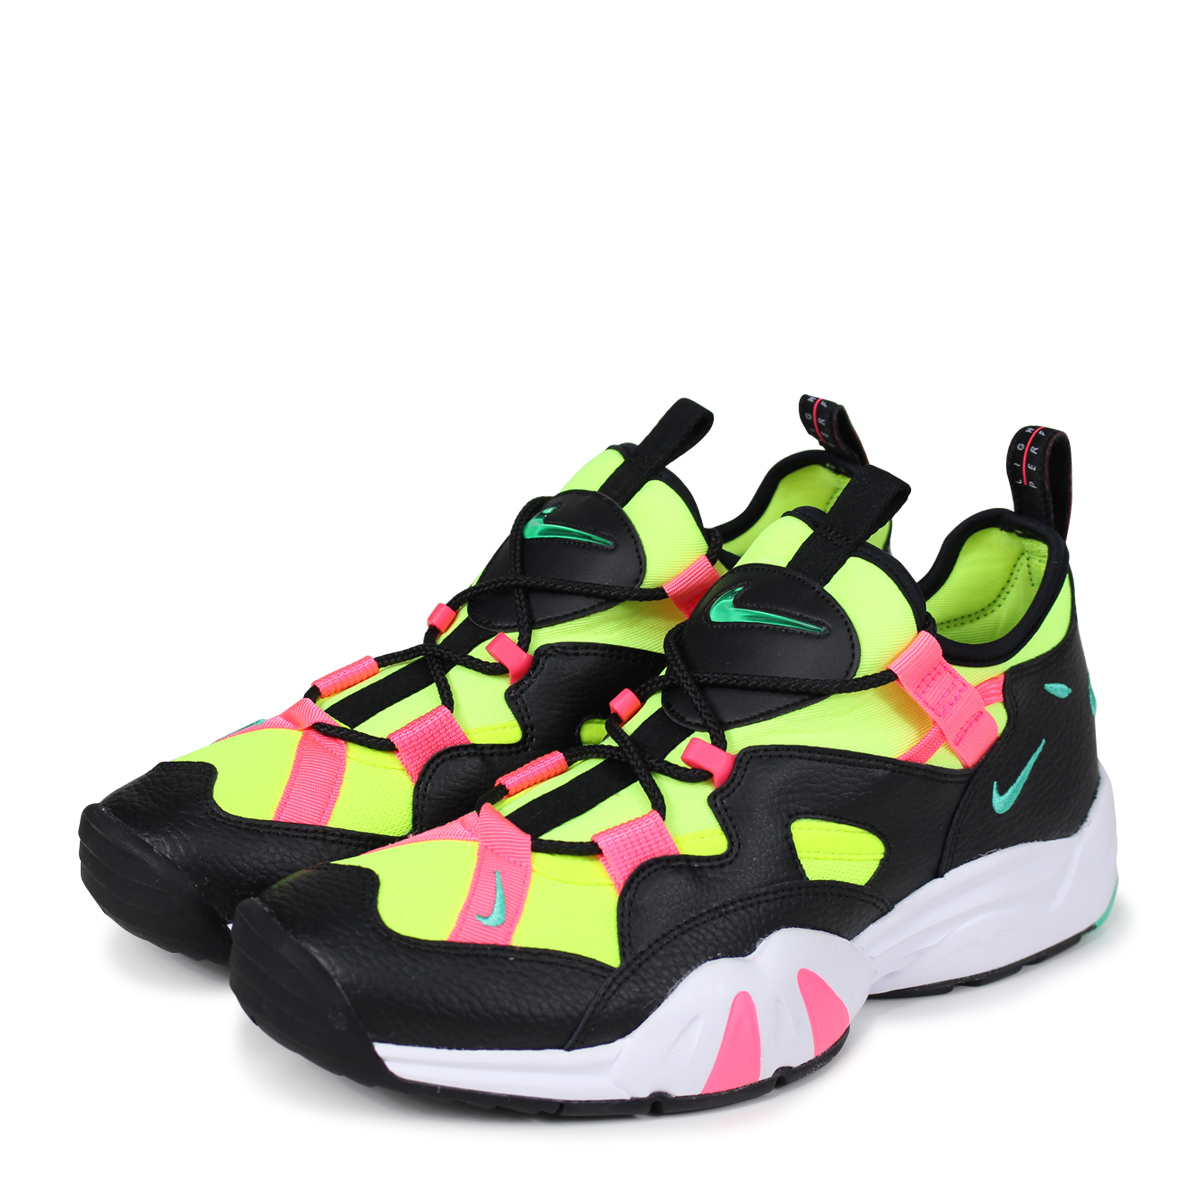 sneakers for cheap 8f3e1 2dc88 Product Information